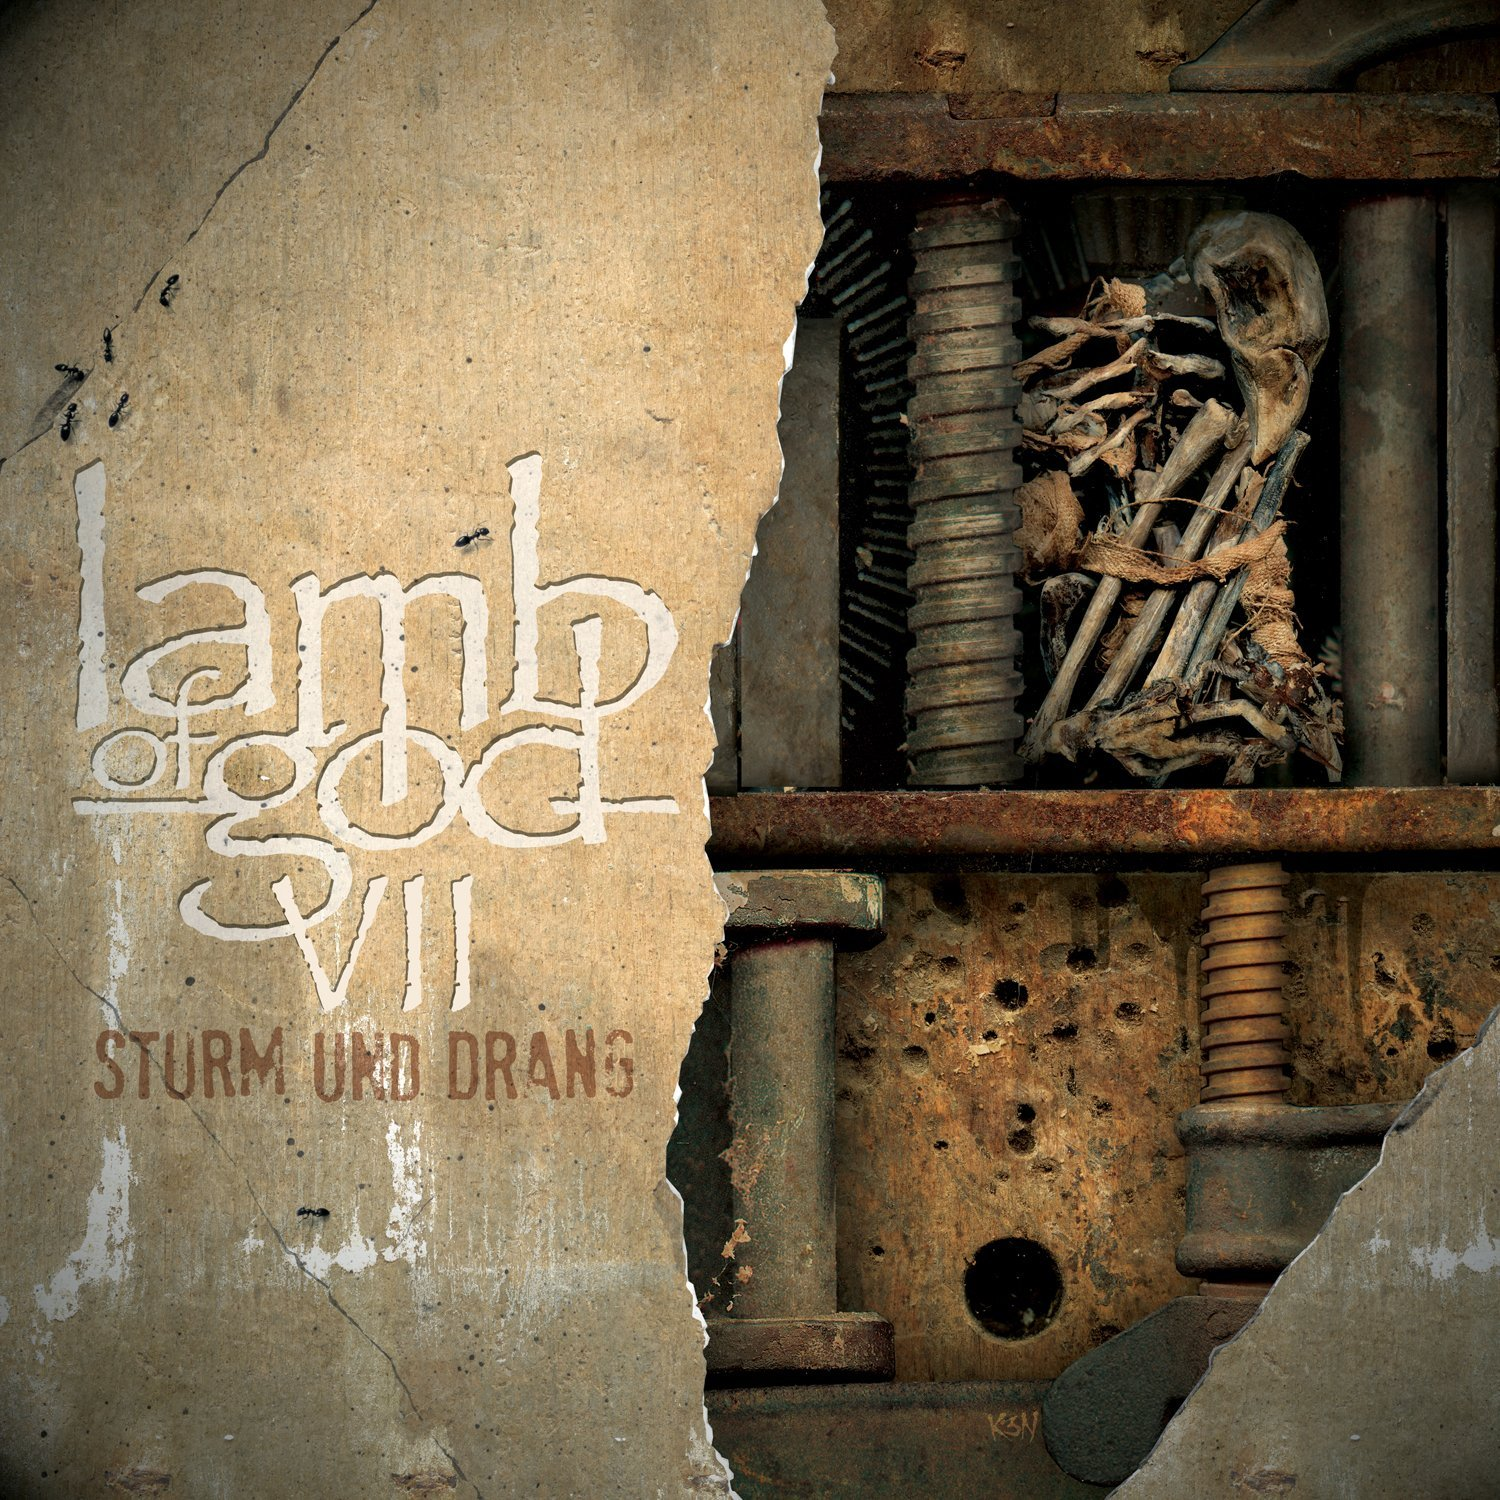 """Lamb Of God – VII: Sturm Und Drang    Well, well, Lamb Of God have come out swinging, and swinging HARD. If you are reading this, then you are more than likely aware of what Lamb Of God, and singer Randy Blythe's, last couple of years have been like, so we don't need to go into all that again. What we CAN go into is how focused, precise, and historic (yes, historic) this album is. Maybe it IS because of what the guys have been through, maybe it's the state of the scene, maybe the stars just happen to be aligning… but this record has a definite vibe to it that the others don't have. Something is in the air with Lamb Of God, and no matter what happens down the line, this record is gonna be in the conversation for a long, long time.    Let's just get this out of the way right now: """"Overlord"""" is a badass masterpiece, and that's the bottom line. If I hear any talk about the vocals being weak because they are clean, or that now LOG is selling out, I'm gonna puke. You are NOT a fan, or a smart person in general if you yell out that stuff. The song itself is epic. A swampy, velvety intro with a bluesy guitar run or two right into Blythe's new found vocal prowess is just the maturity and progression this band has needed. These guys get it, and that's refreshing.    I'm stoked by """"Still Echoes"""" alone. That song is a great album starter and an instant classic….razor sharp and executed to perfection. This is the focus I'm talkin' about. A metalheads delight for sure. """"512"""" is an anthem if there ever was one, with a mountain-sized chorus that I know audiences from here to Tokyo will be singing back to the band. Chino from The Deftones lends vocals to """"Embers"""", another standout track…..it makes you good to feel somber if you can imagine that    """"Footprints"""", """"Torches"""", I could go on and on and on. This record has been worth the wait, and really has gotten me back into Lamb Of God in a heavy way. This is an album they had to make and it's cemented in Heavy Metal culture already… a"""